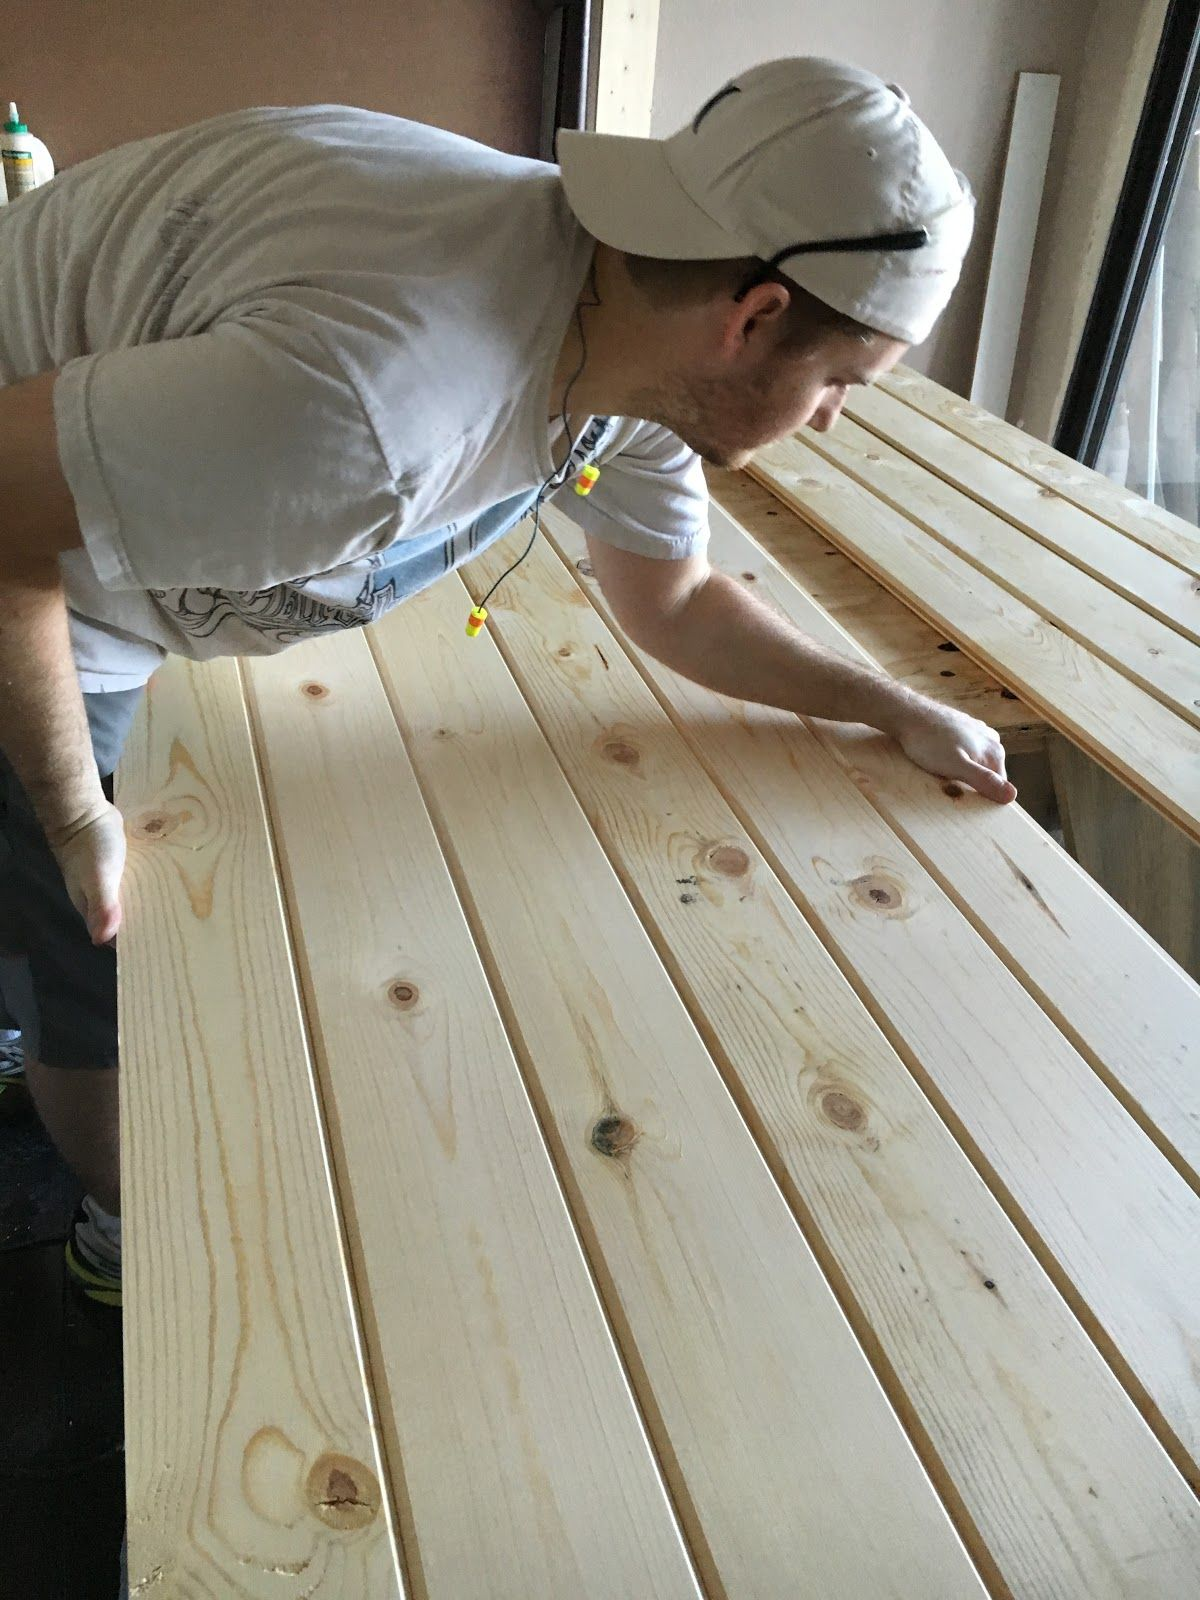 Build A Barn Door The Simplest Way Possible With Tongue And Groove Boards From Home Depot Over I Barn Door